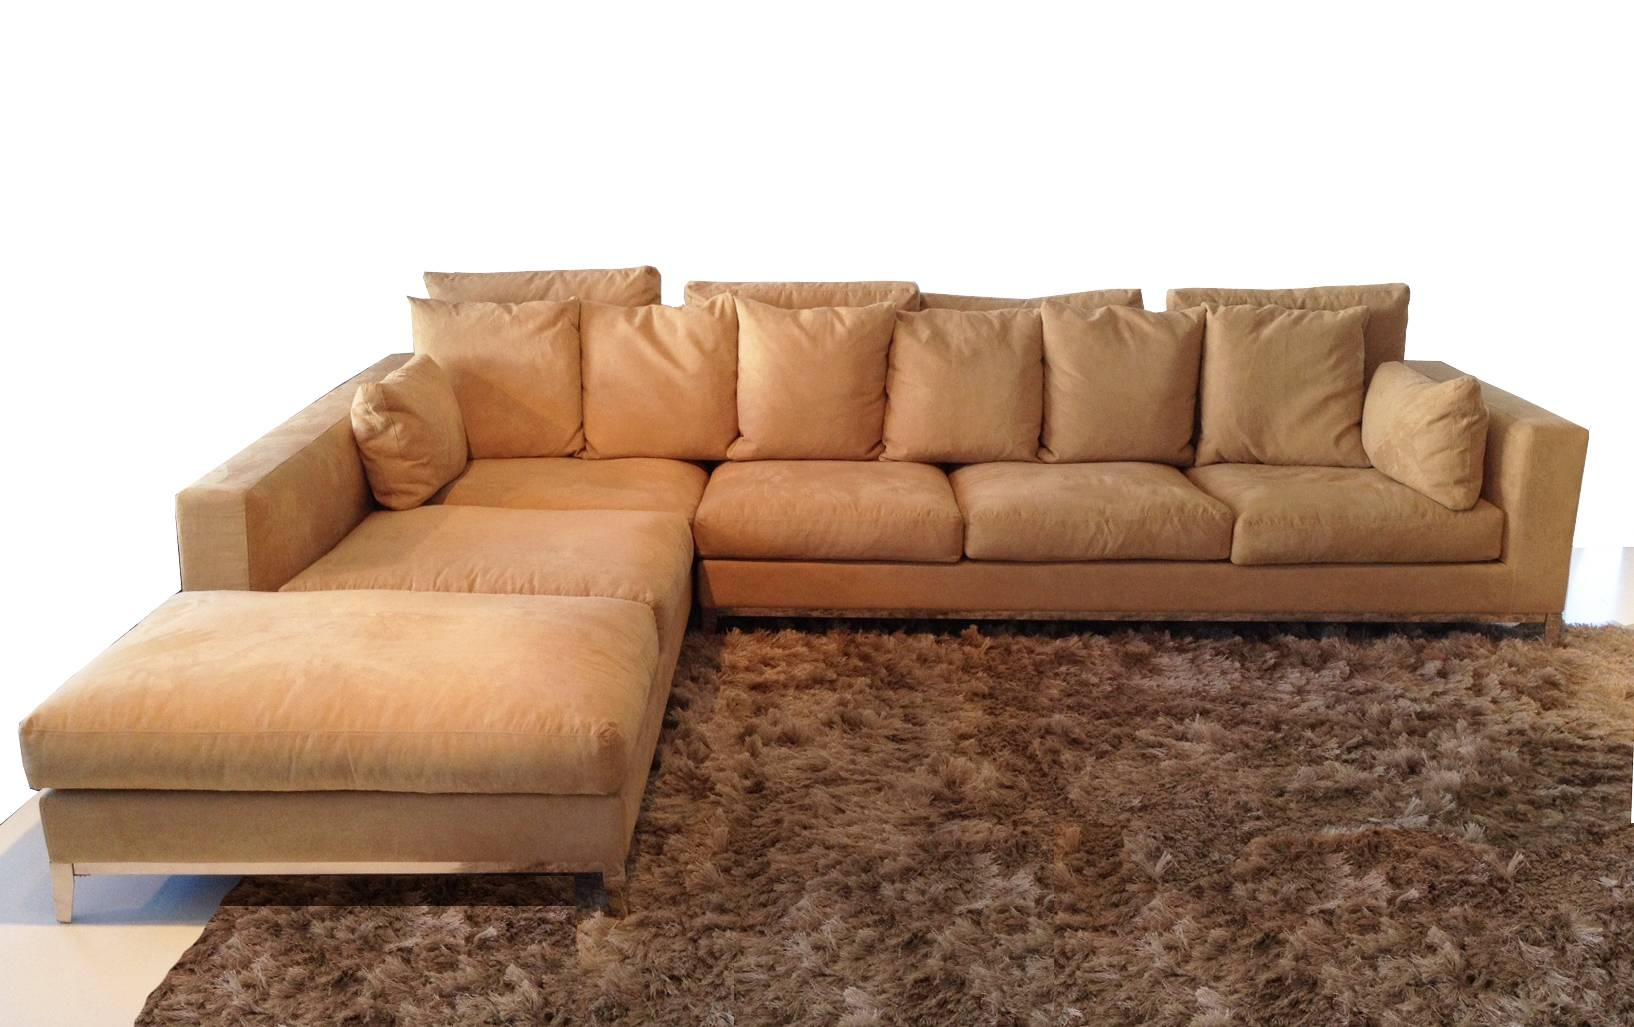 Furniture: Nice Extra Large Sectional Sofa For Large Living Room for Long Chaise Sofa (Image 9 of 25)